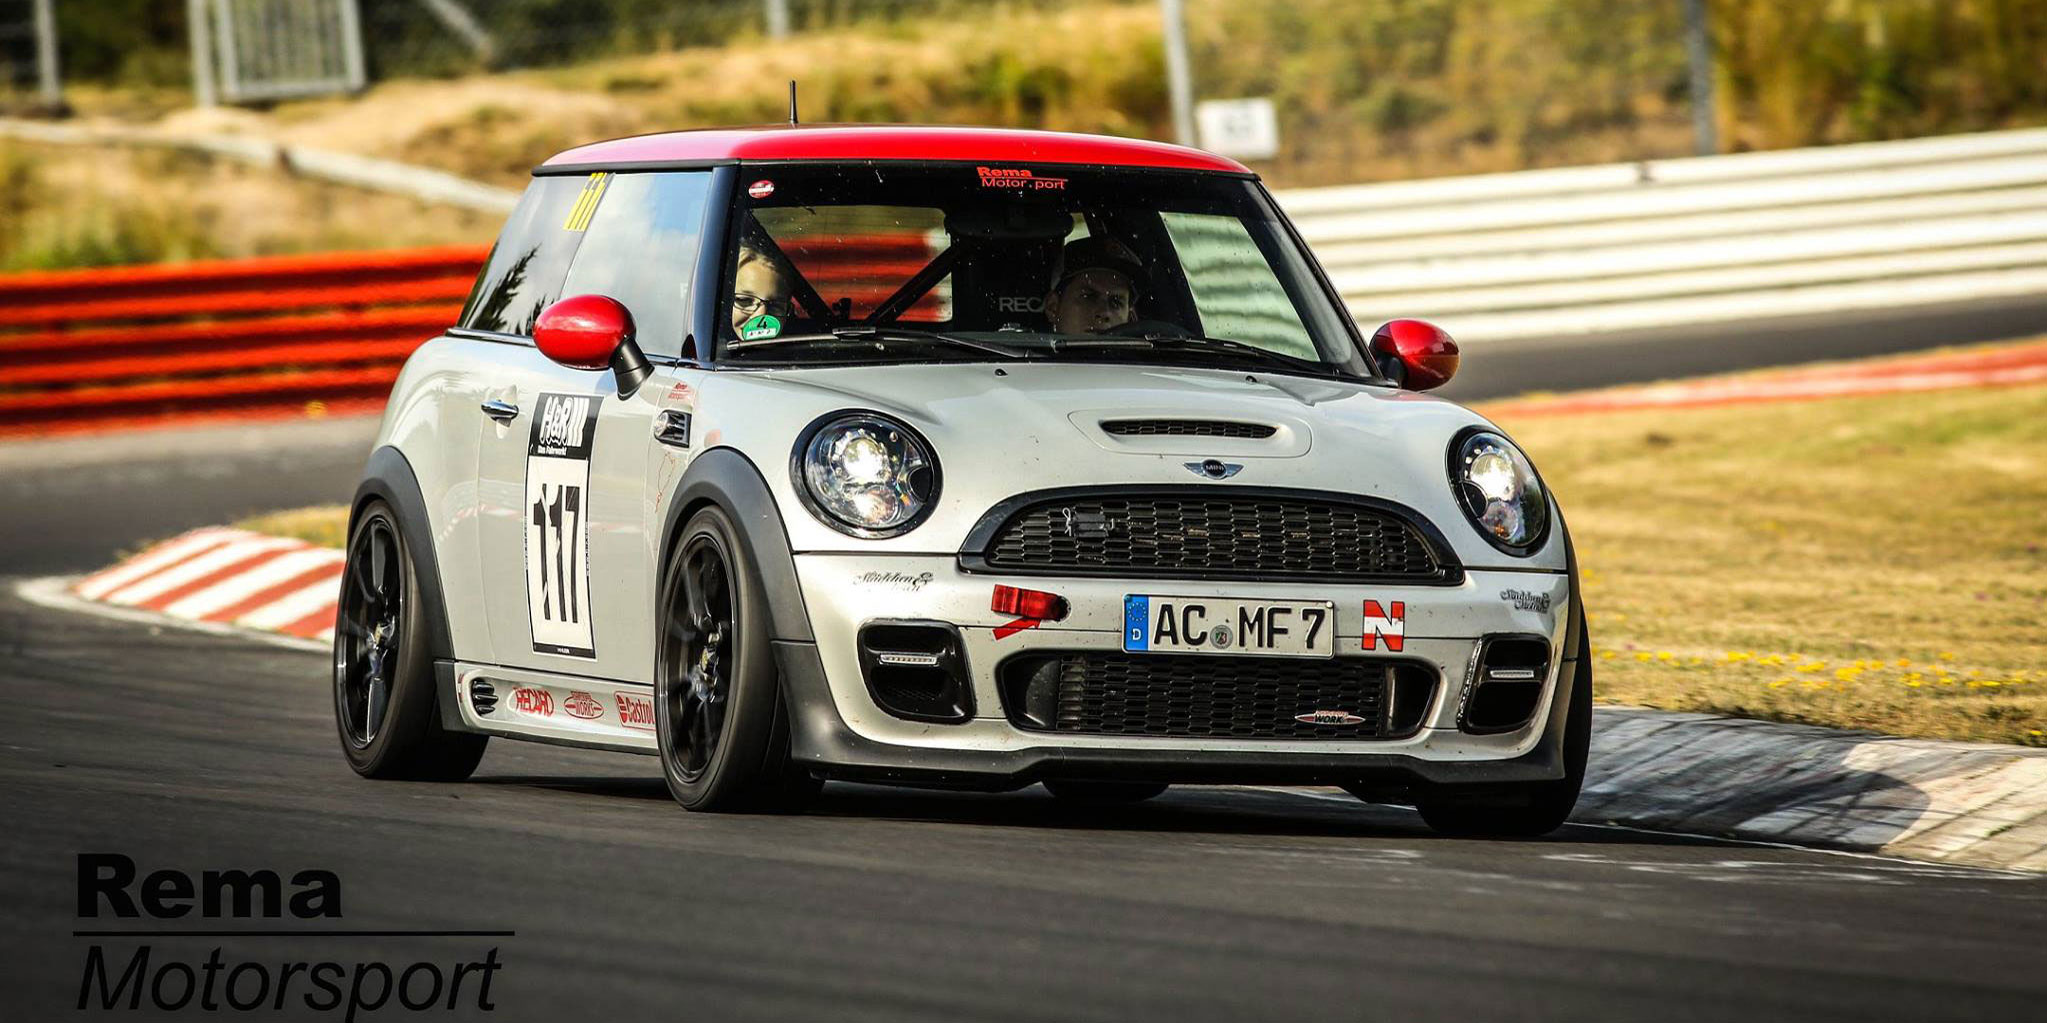 MINI-Rema-Motorsport-(8)